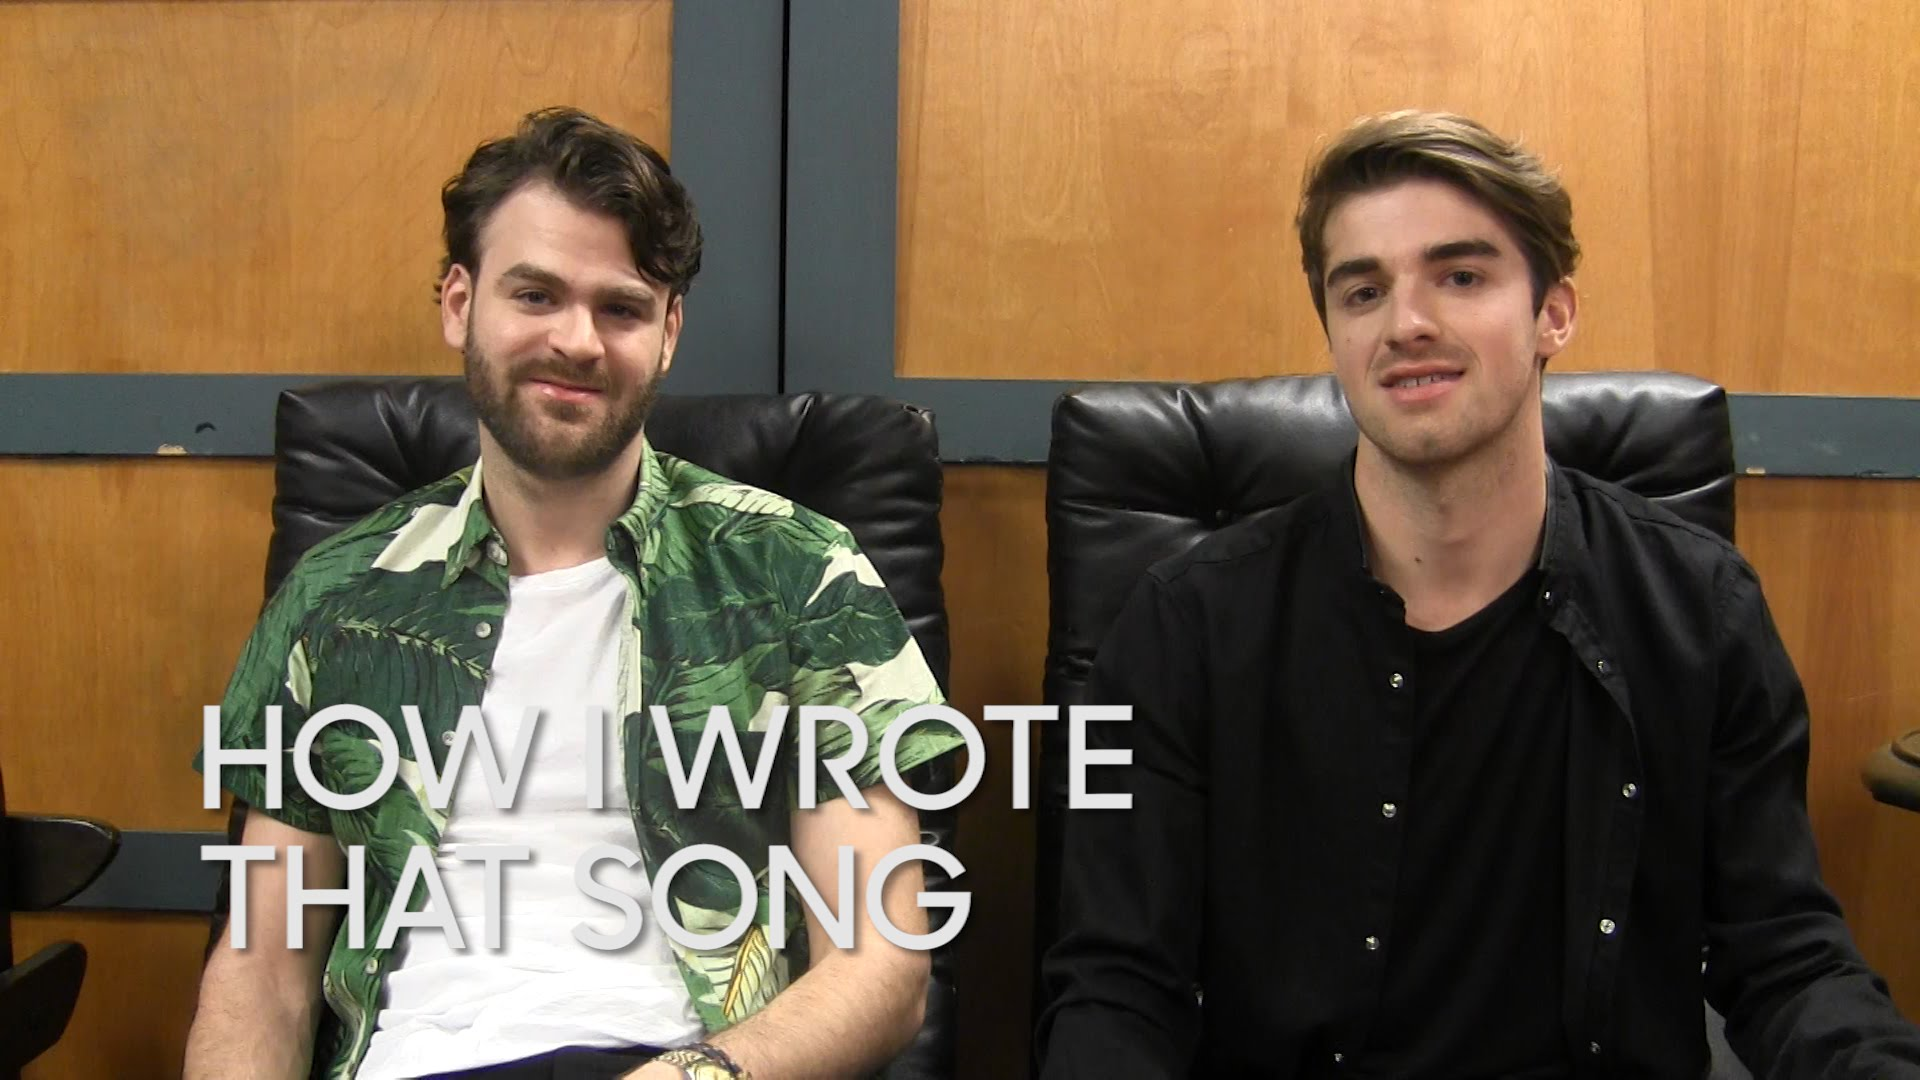 Watch Late Night with Jimmy Fallon Season  - How I Wrote That Song: The Chainsmokers